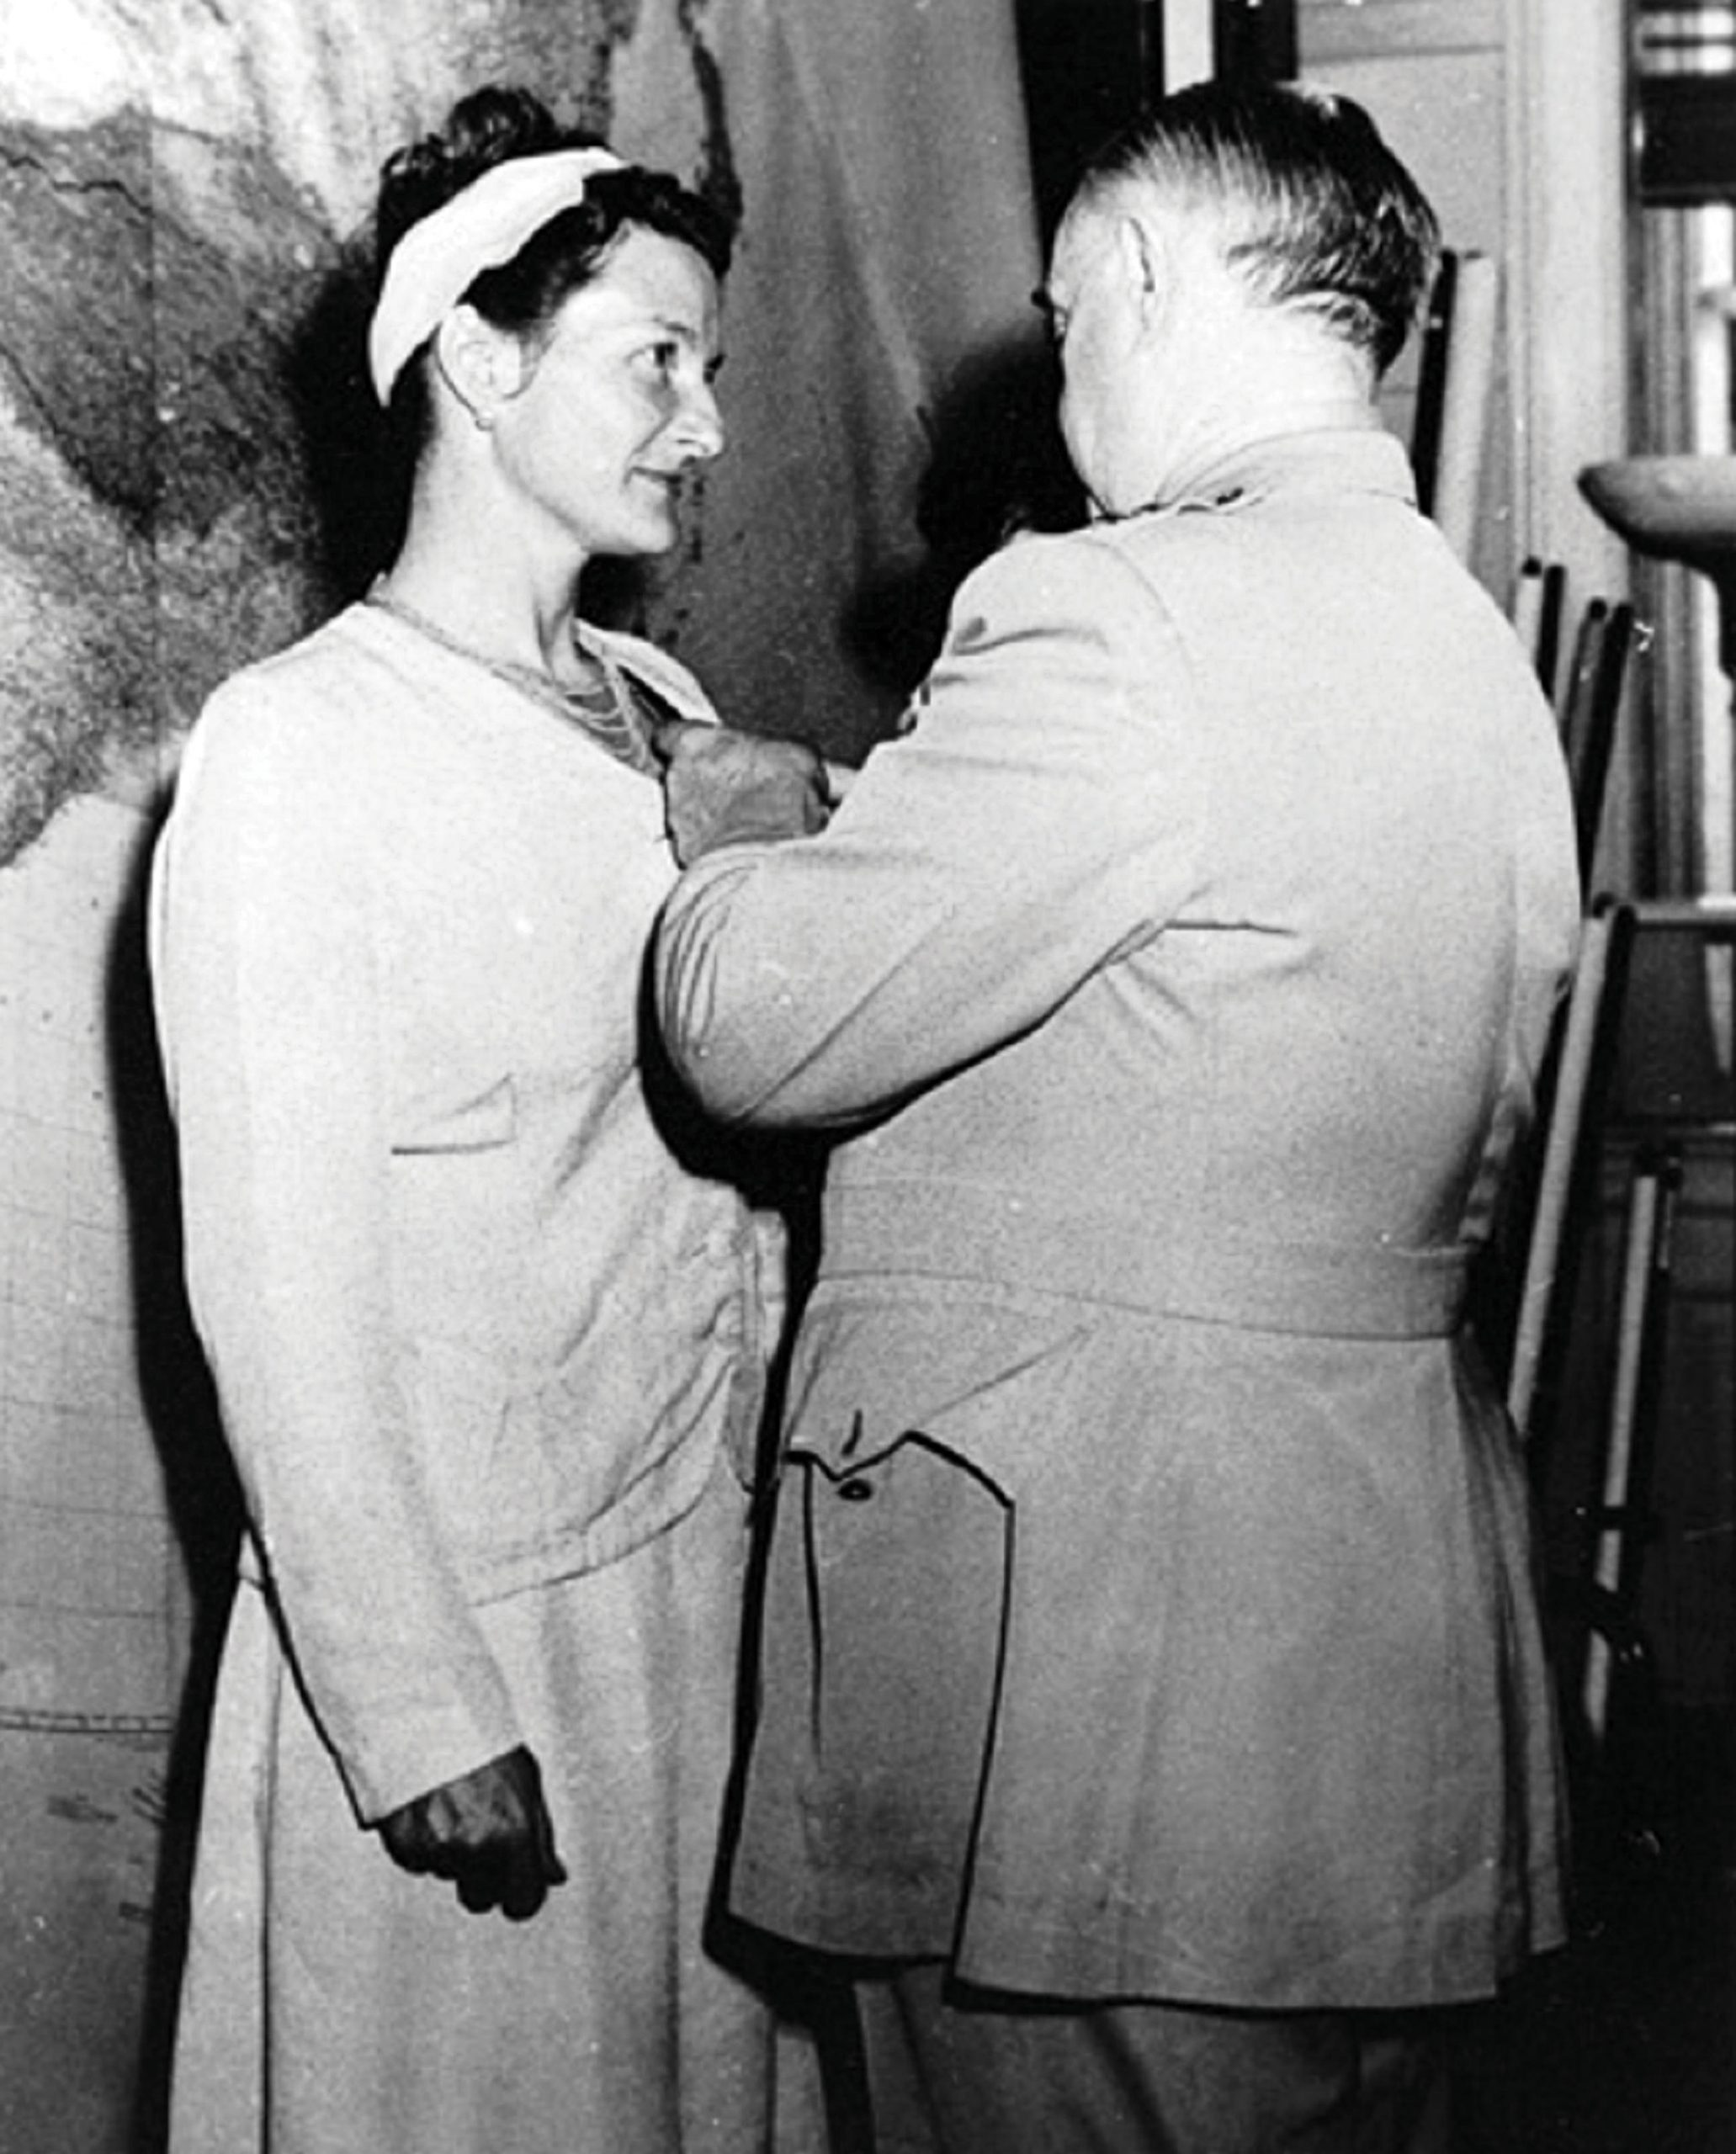 Virginia Hall, an American who worked with the U.K.'s clandestine Special Operations Executive (SOE) and the U.S. Office of Strategic Services, received the Distinguished Service Cross in 1945. Photograph courtesy of GL Archive/Alamy Stock Photo.